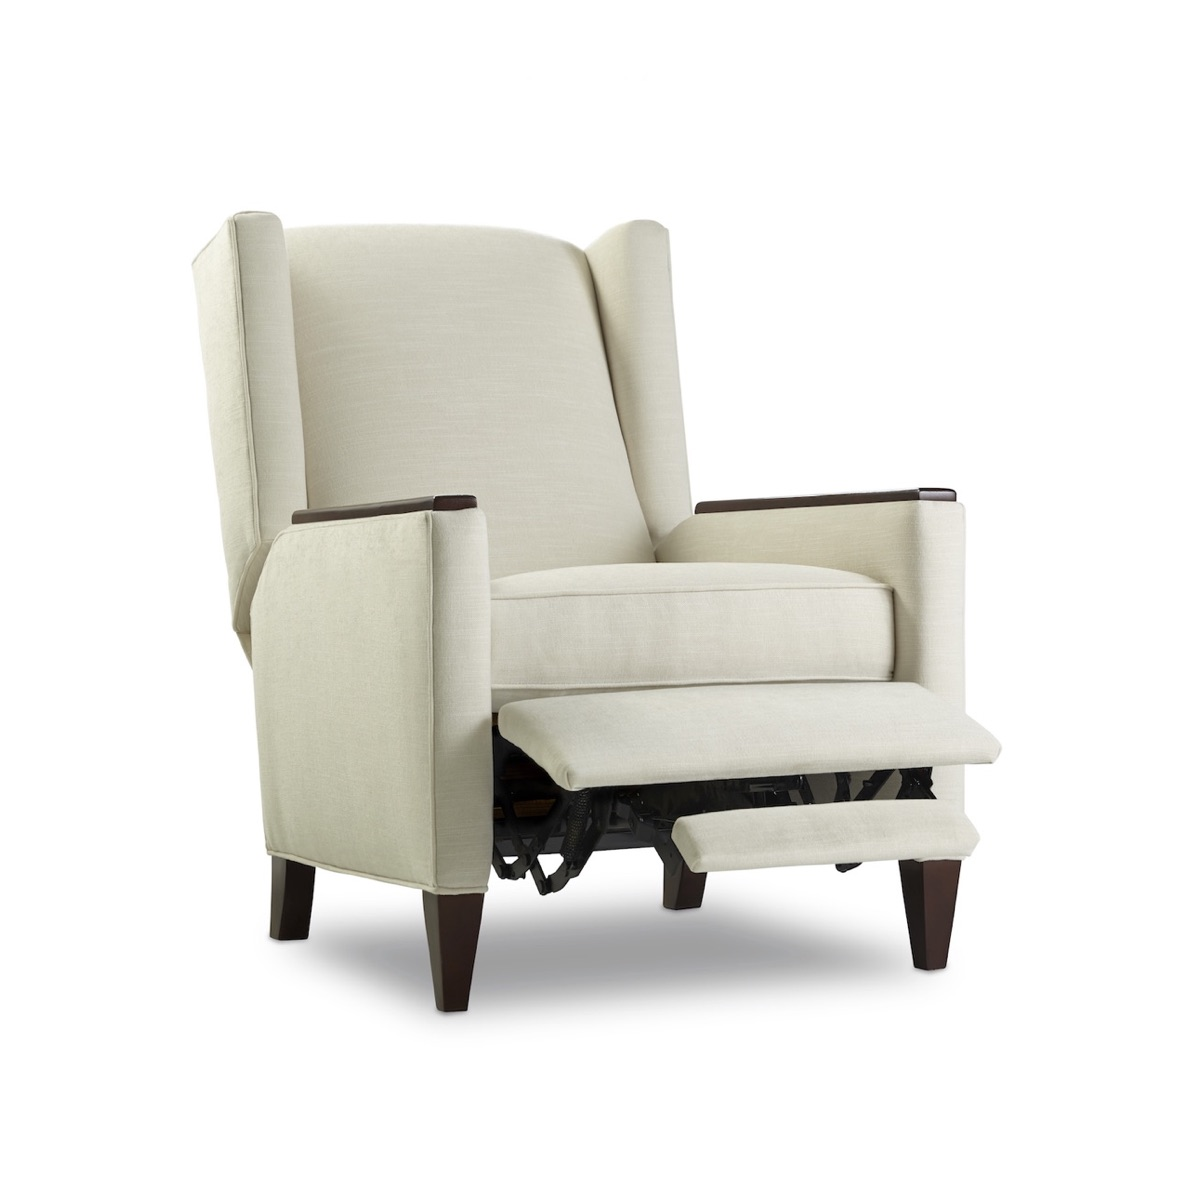 Layne recliner w arm caps h contract furniture